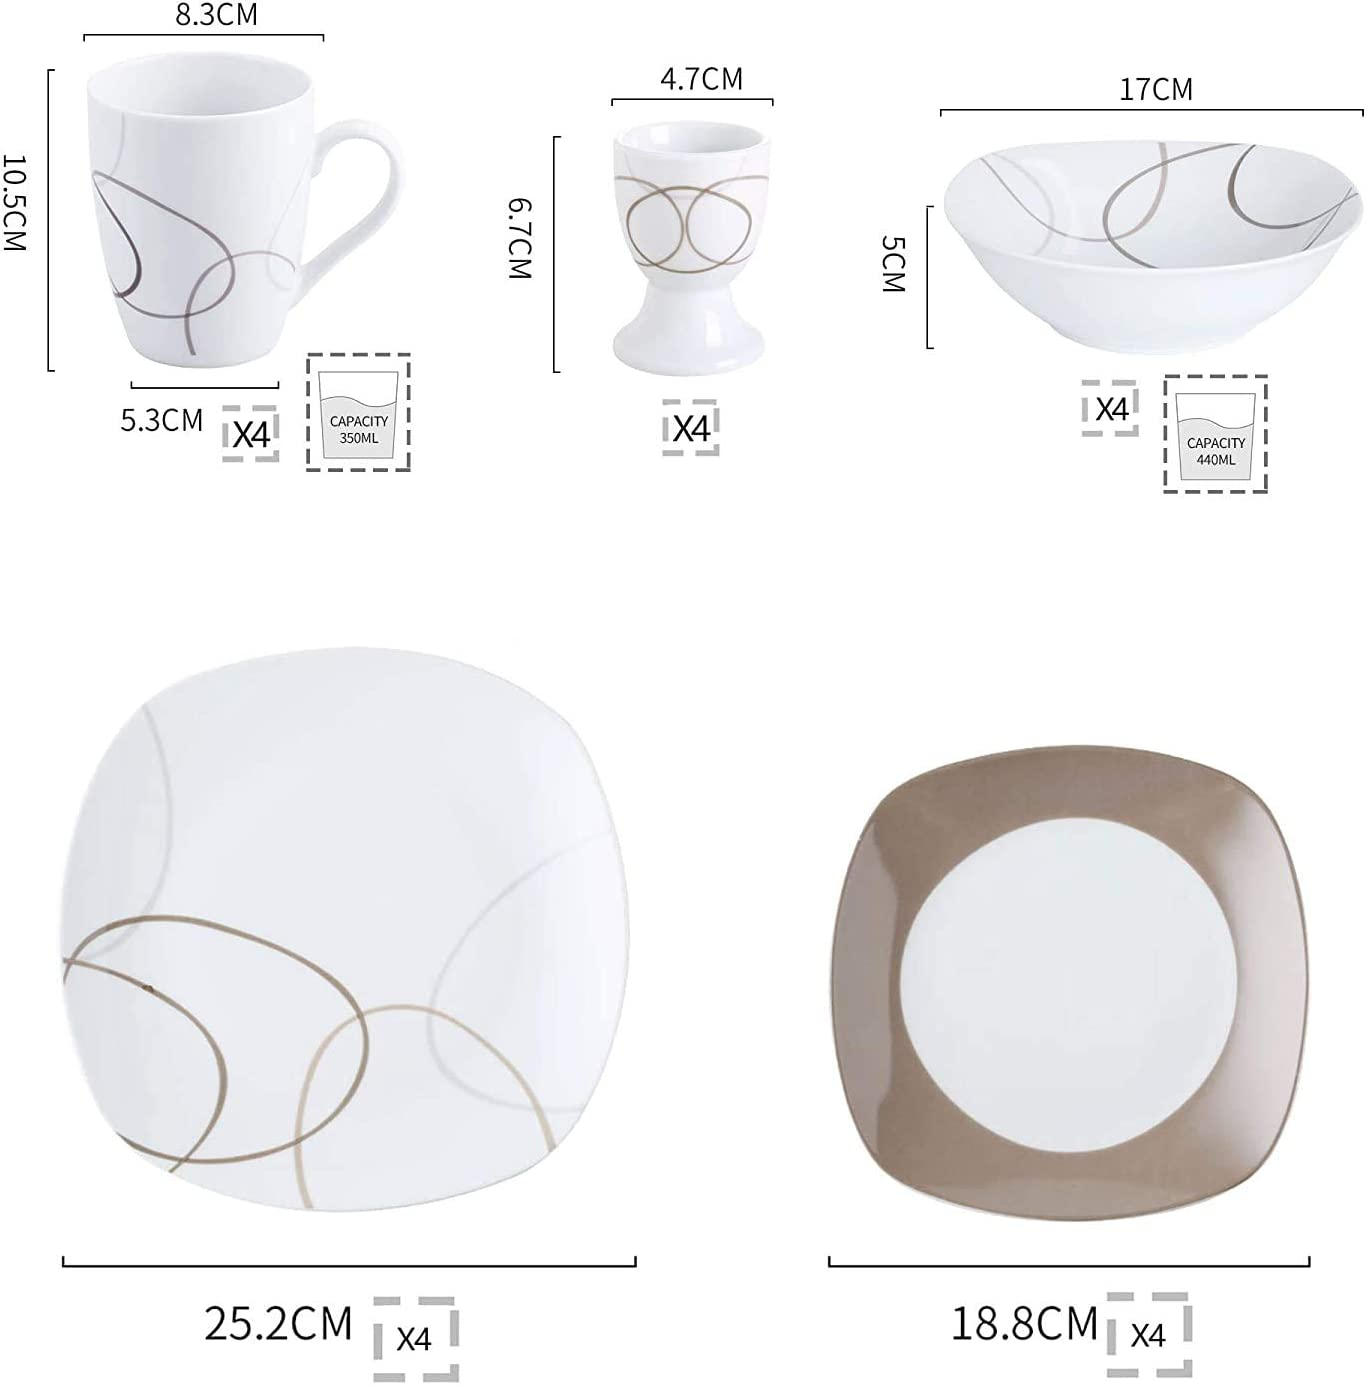 Soup Plate Dessert Plate NIKITA Series Service for 6 VEWEET 18-Piece Porcelain Tableware Set Brown Lines Patterns Kitchen Dinner Sets with Dinner Plate